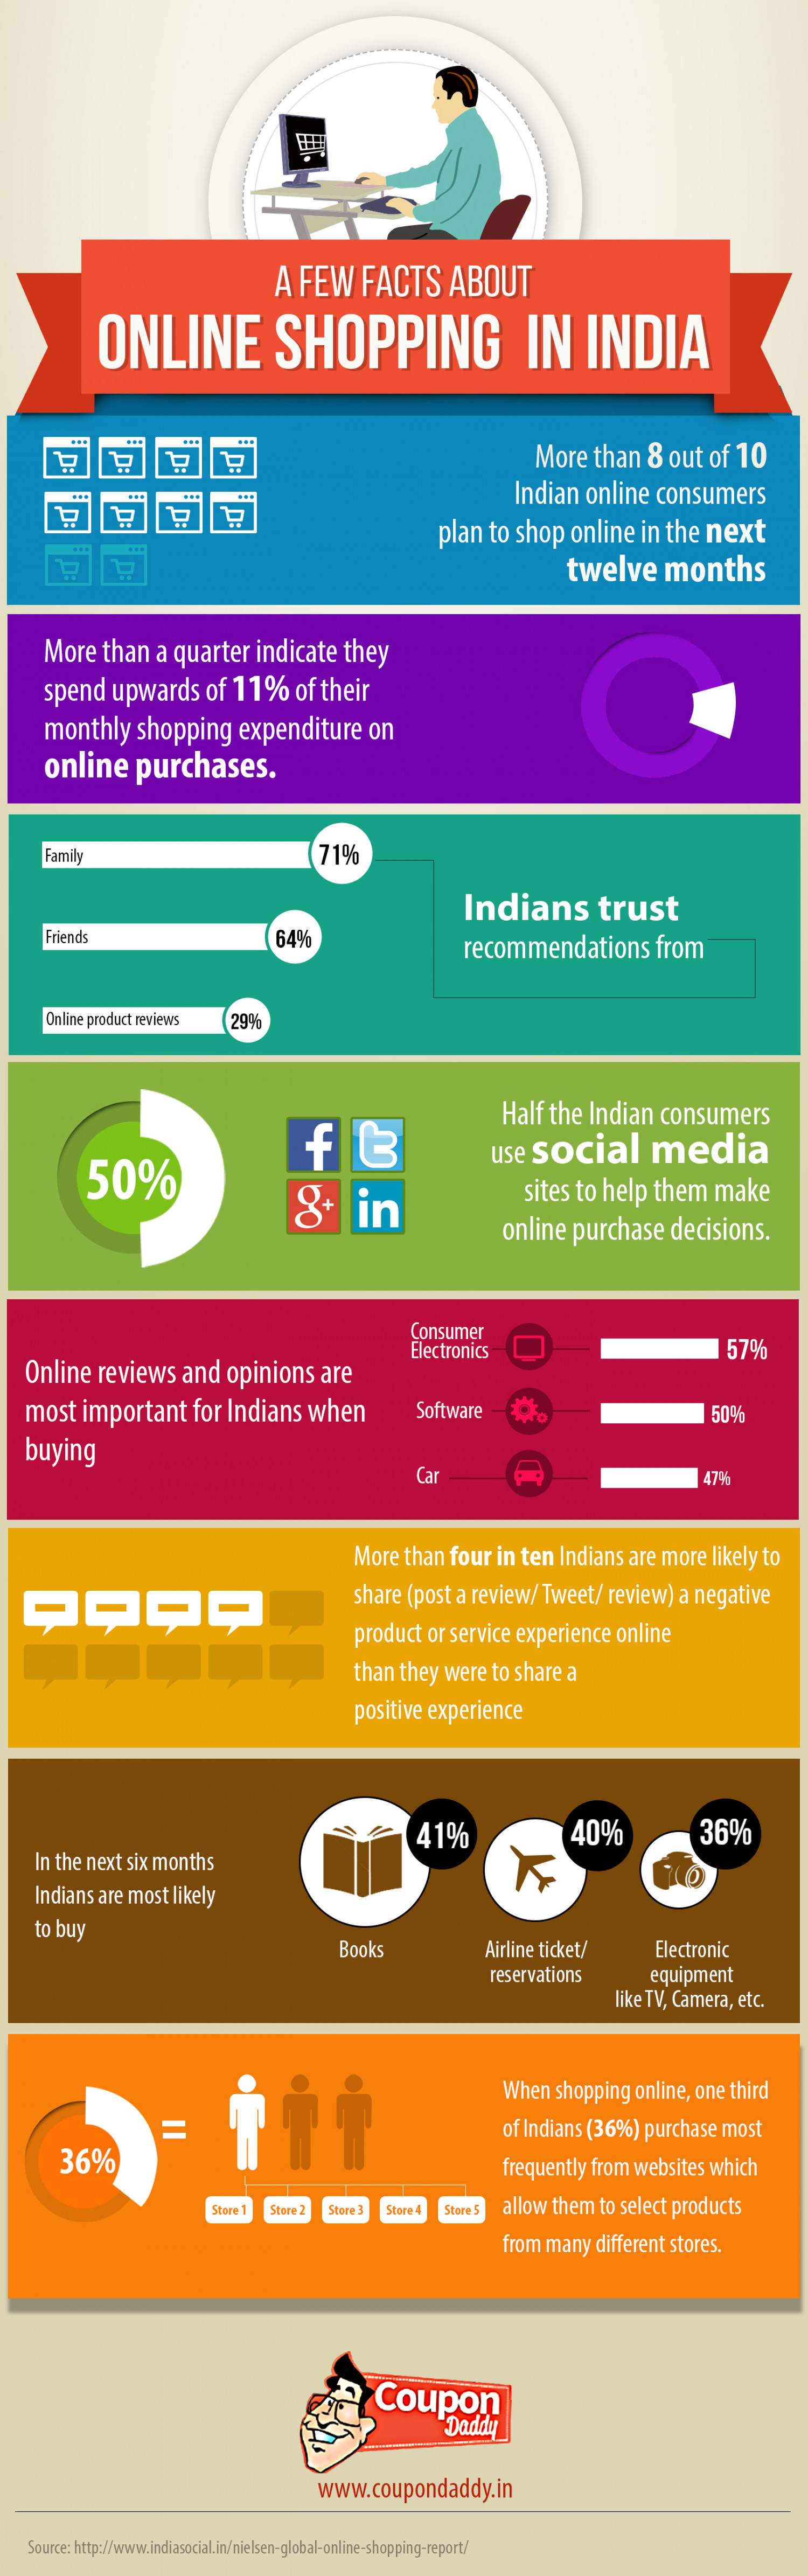 A Few Facts About Online Shopping in India Infographic